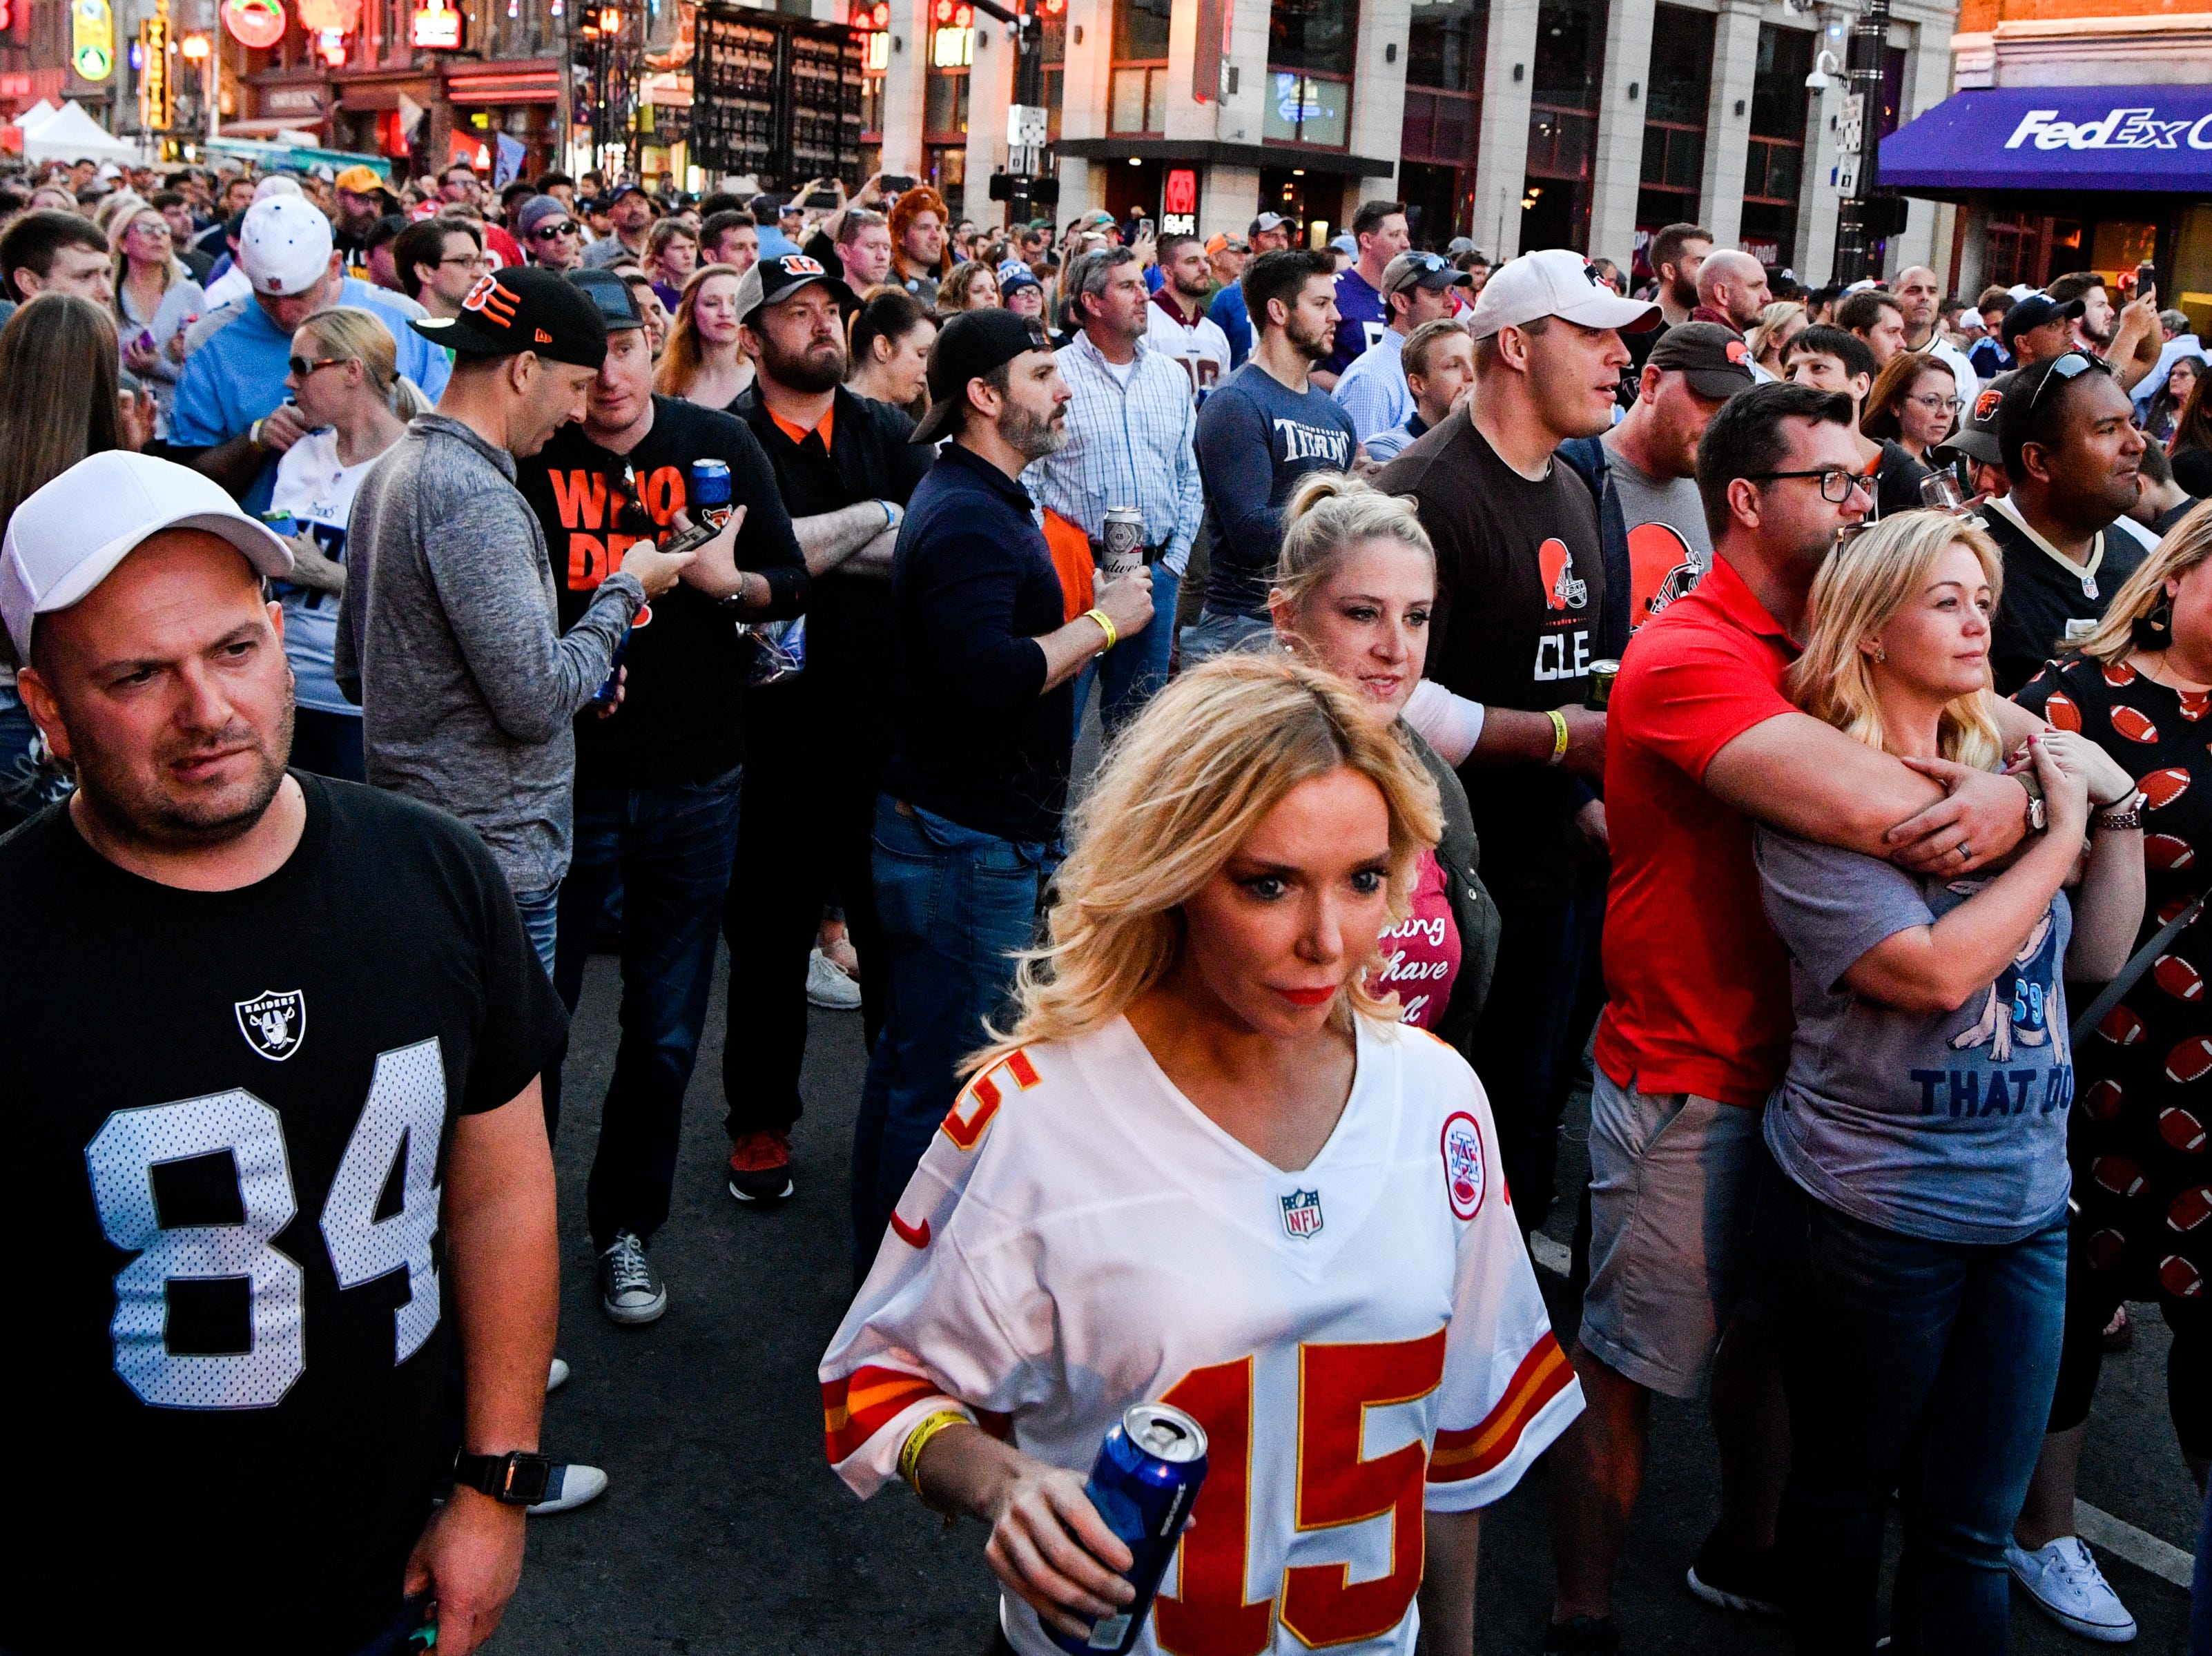 Fans gather on Lower Broadway during the NFL Draft Experience Friday, April 26, 2019, in Nashville, Tenn.